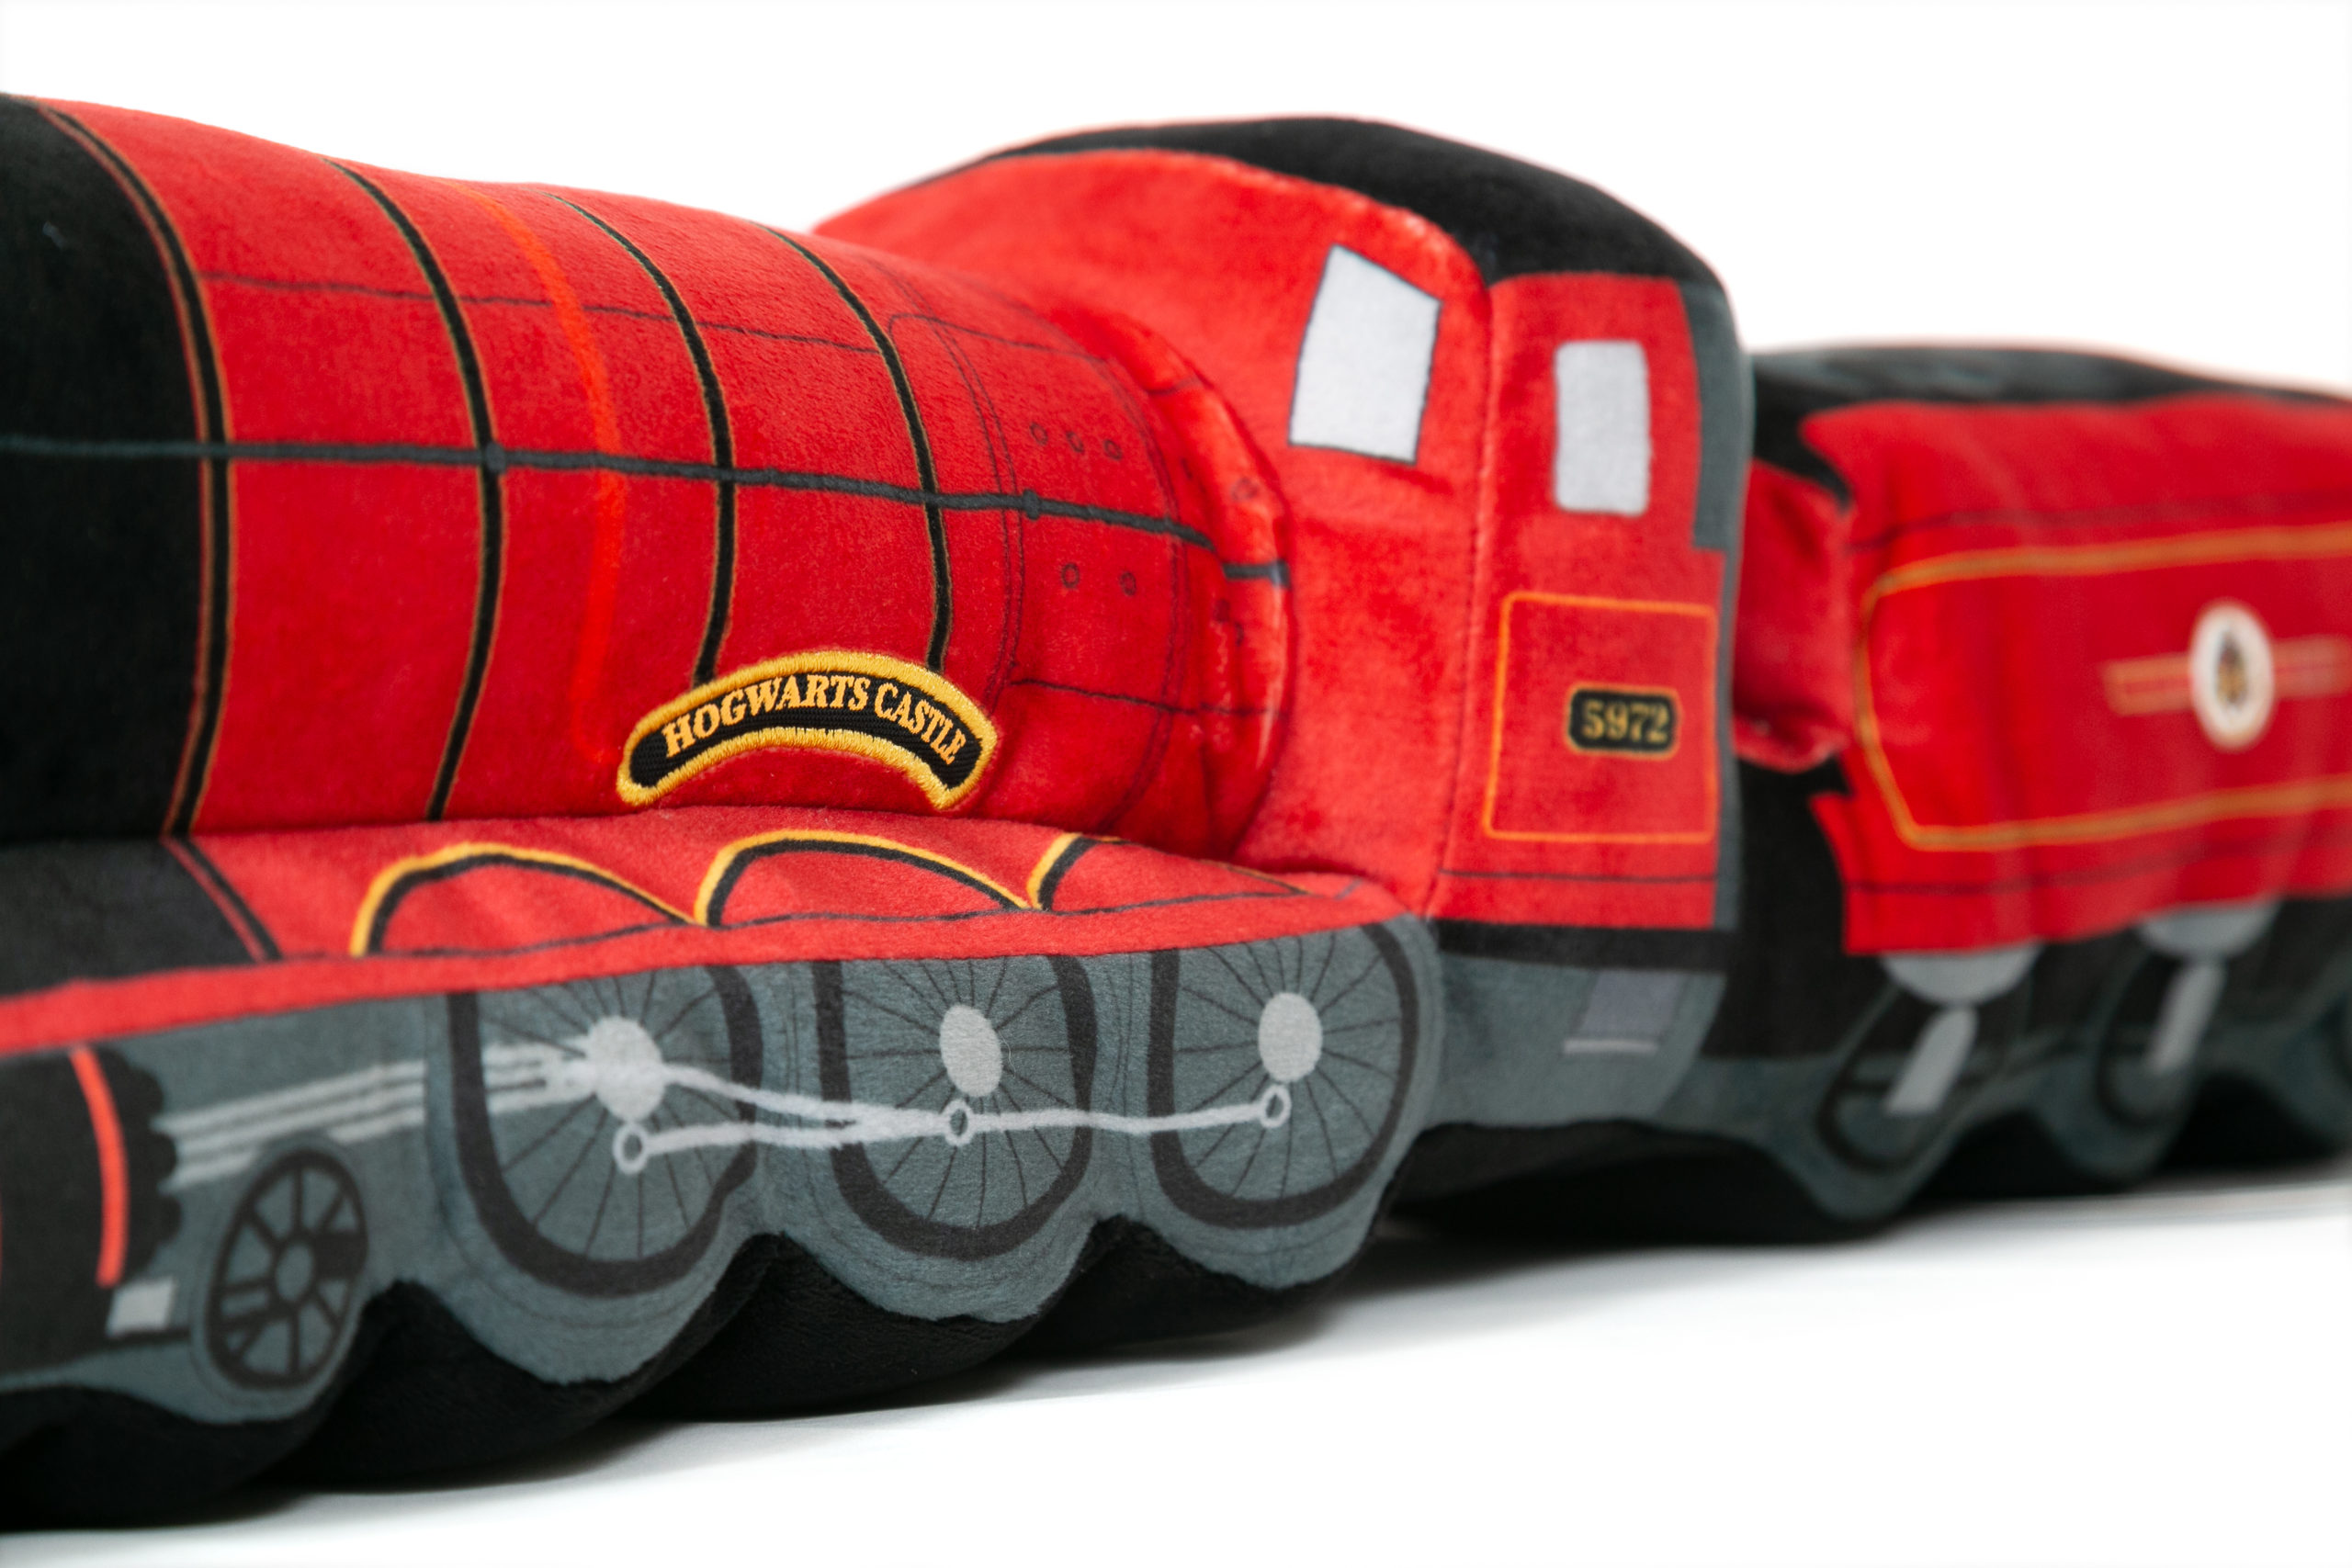 Check out all the amazing details on the side of the train!